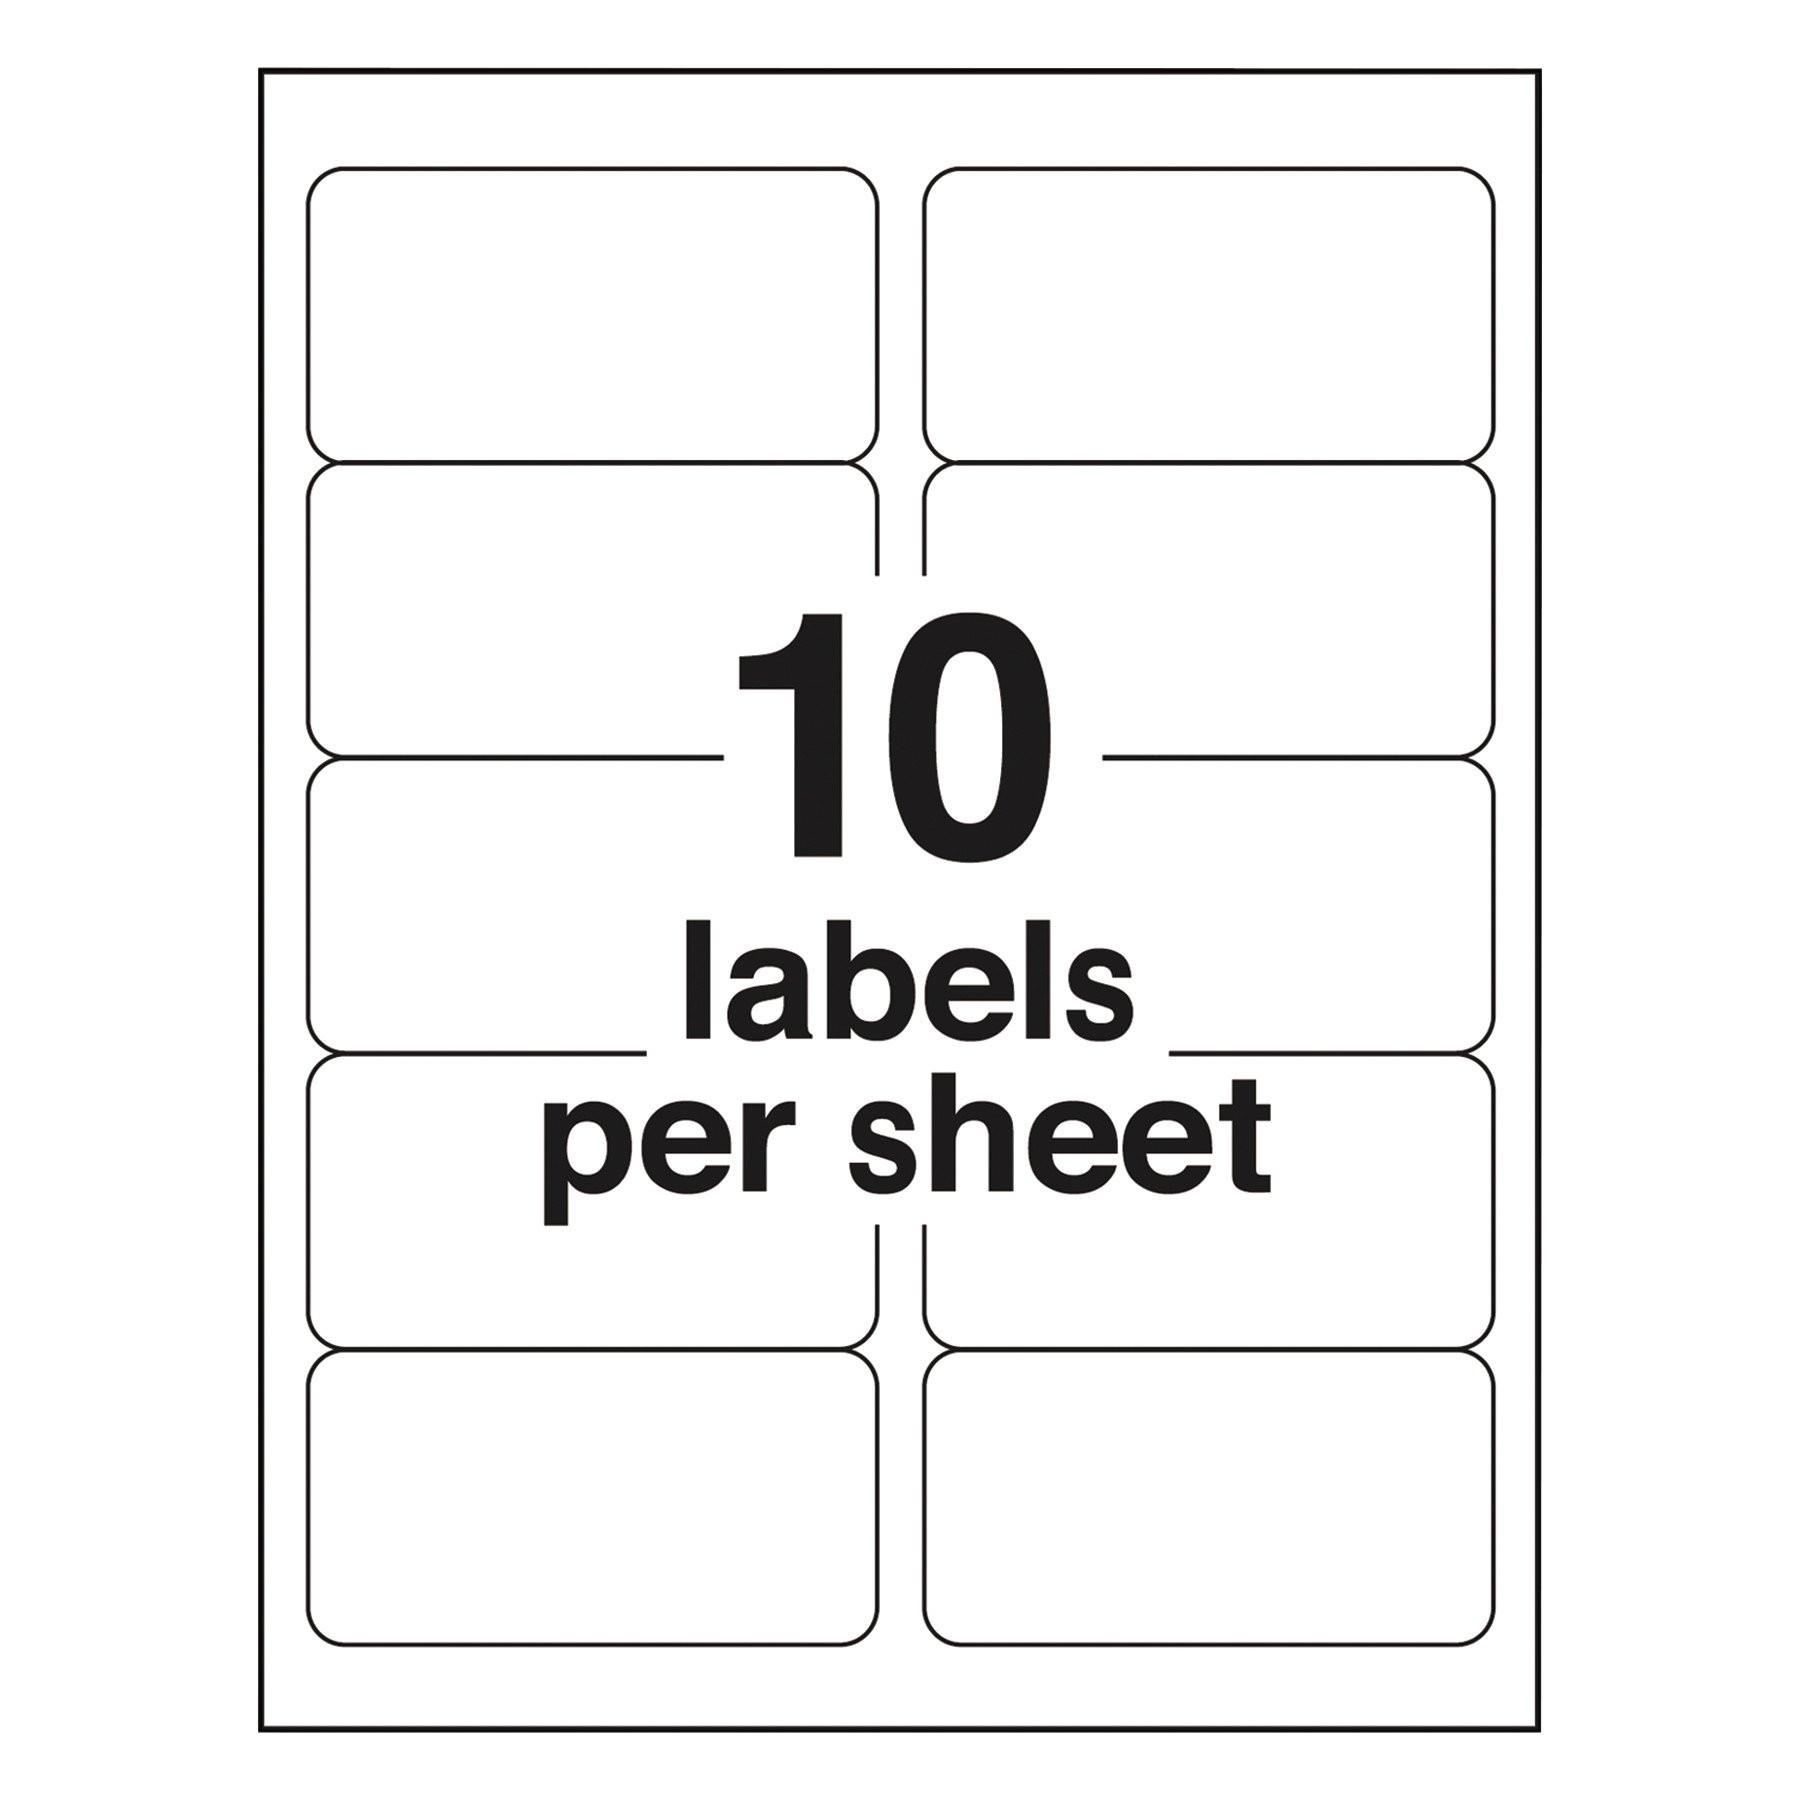 Blank Label Template Avery 5163